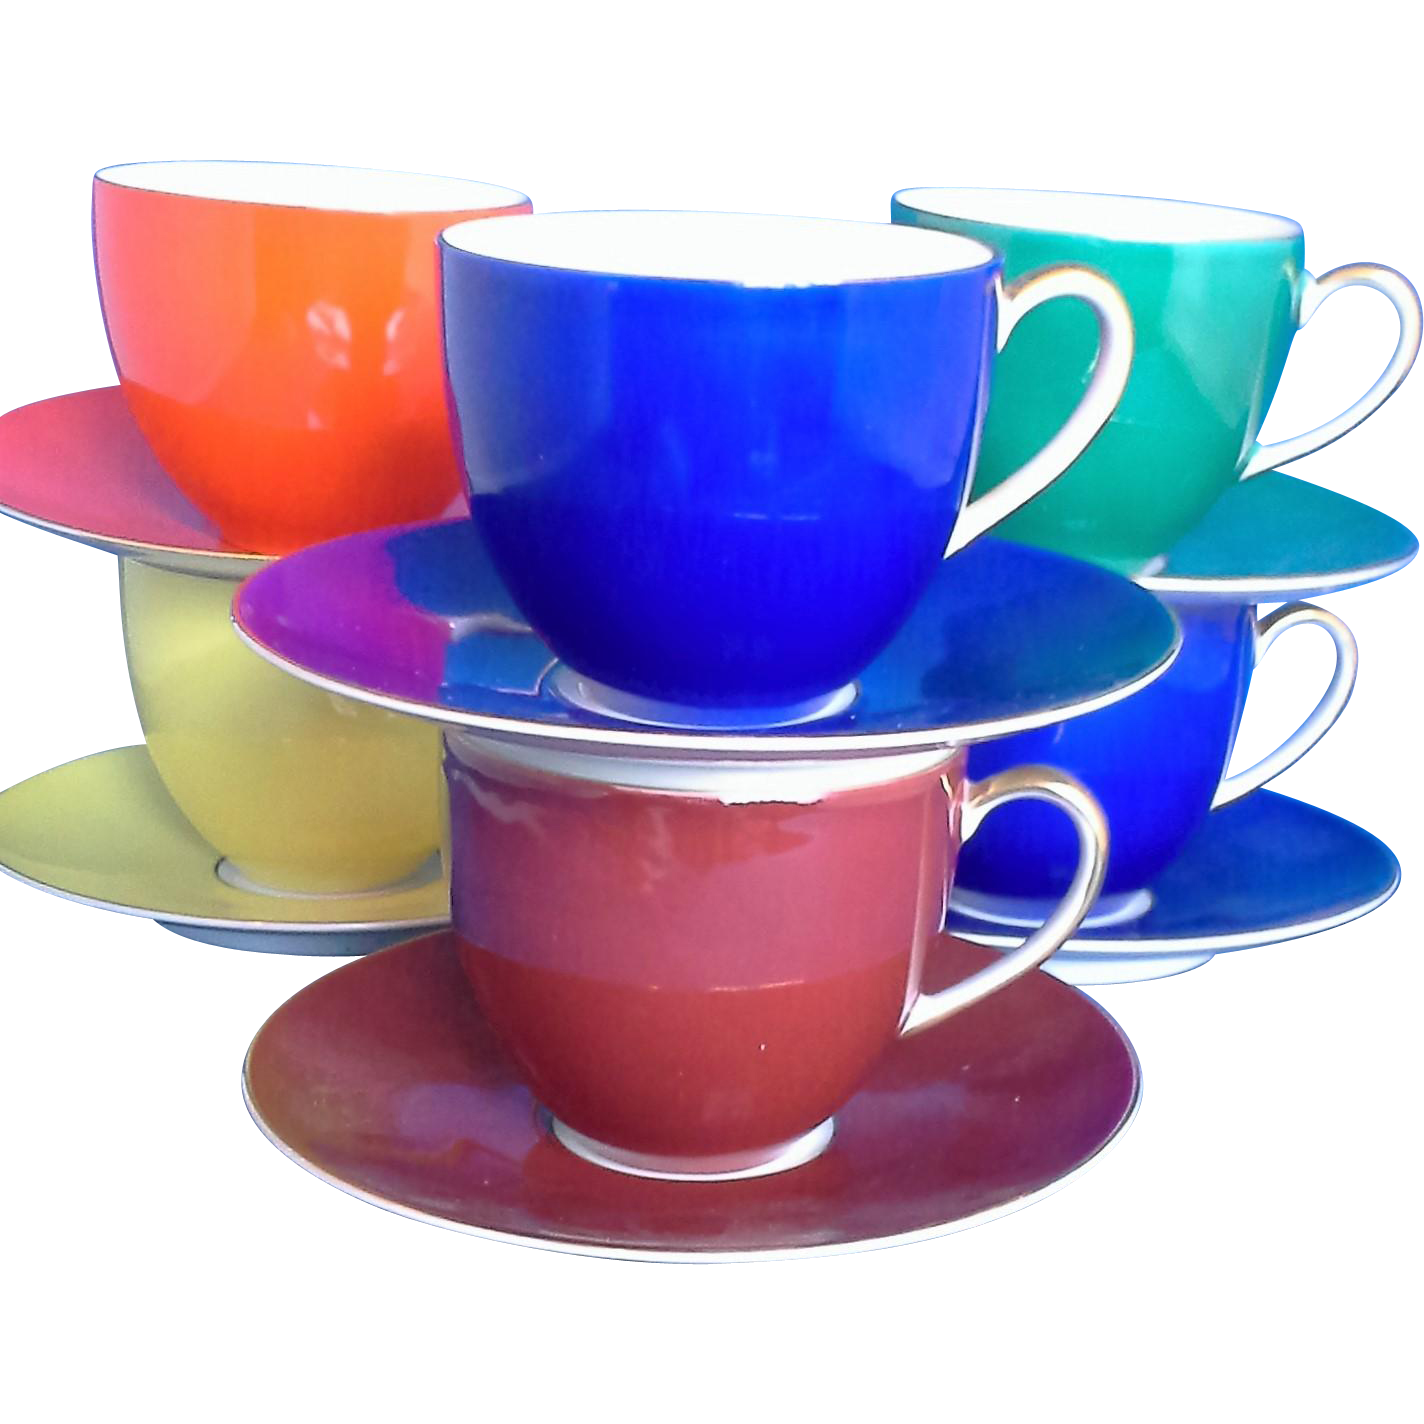 Porzellanfabrik Arzberg Bayern Porcelain Demitasse Set 5 Cups 5 Saucers Different Colors